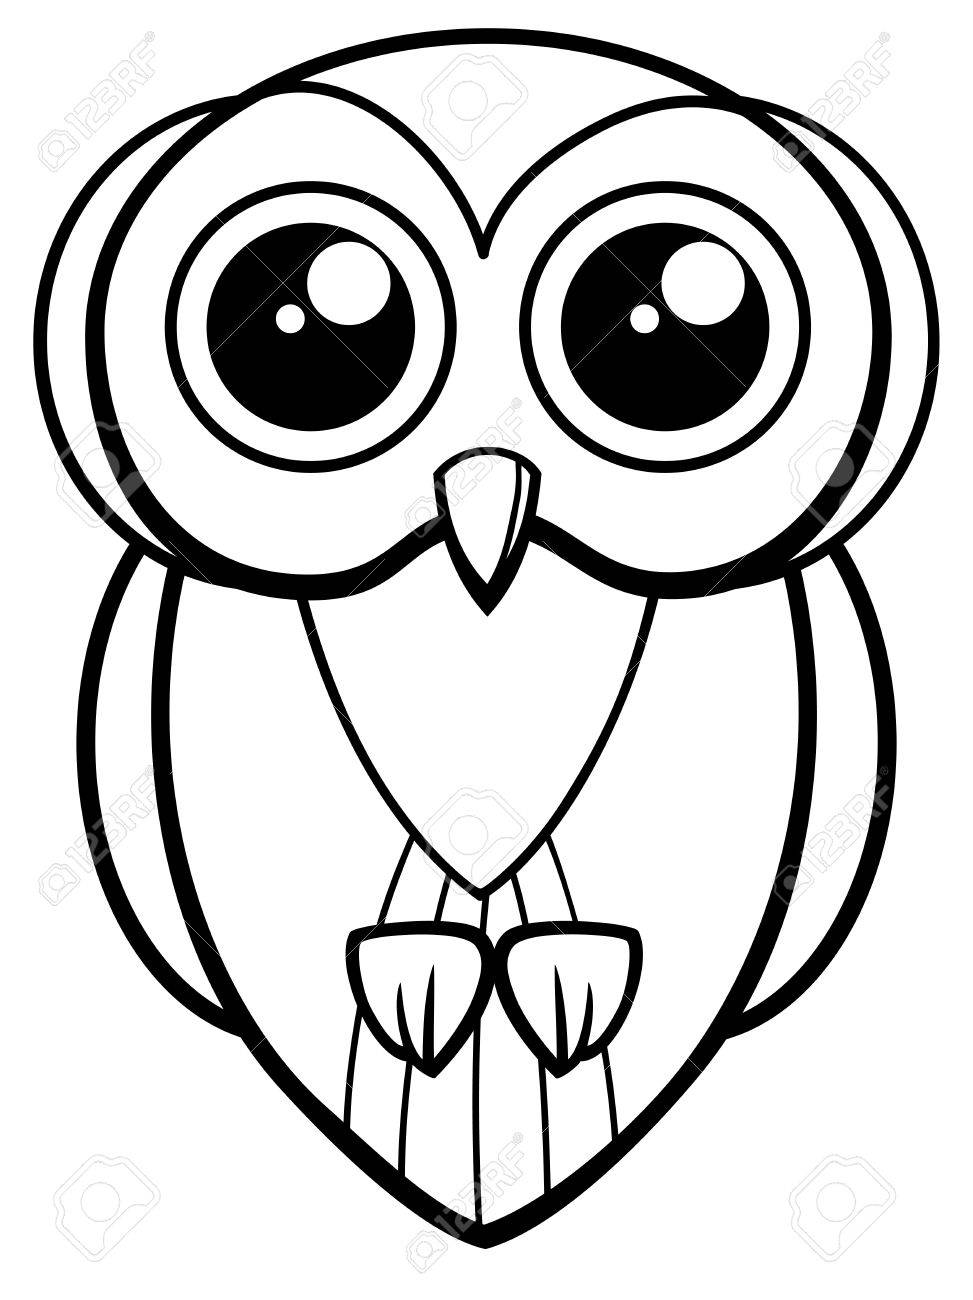 Black And White Cartoon Illustration Of Cute Owl Bird Animal Coloring Page  Stock Vector   72664783